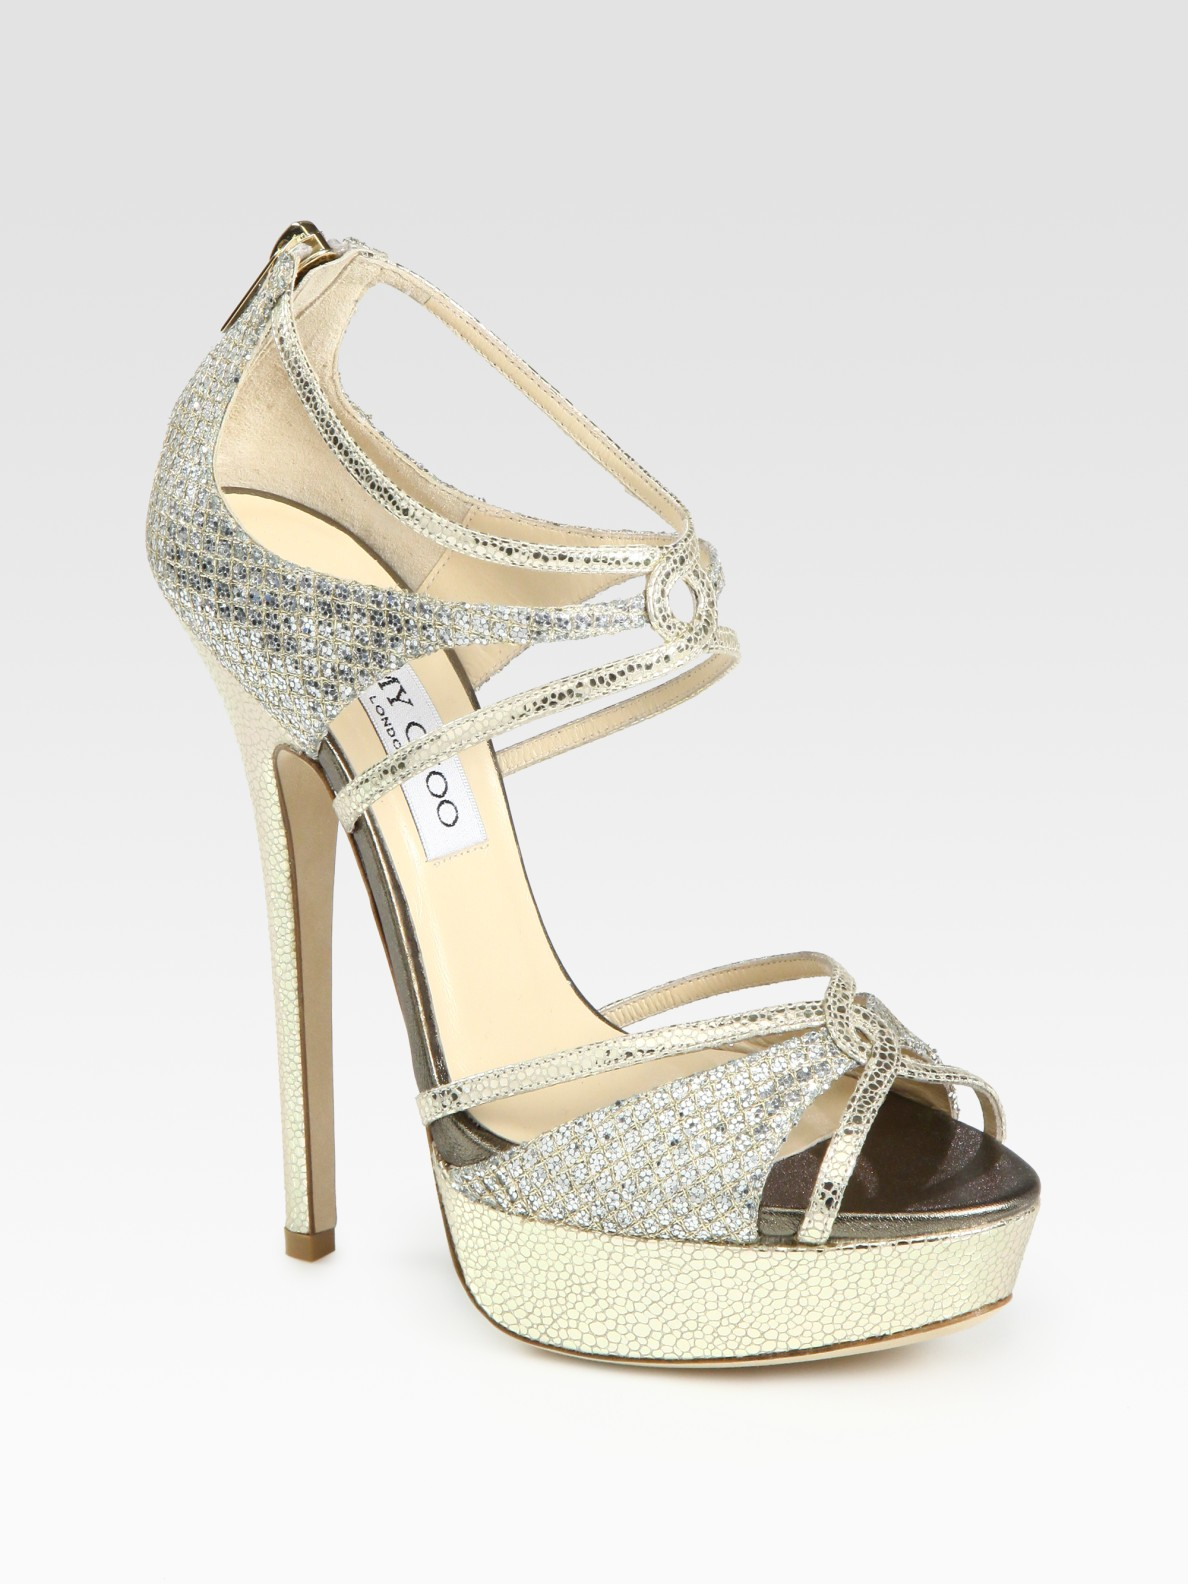 bb608463914 Jimmy Choo Sierra Glitter-coated Snake-print Leather Platform ...